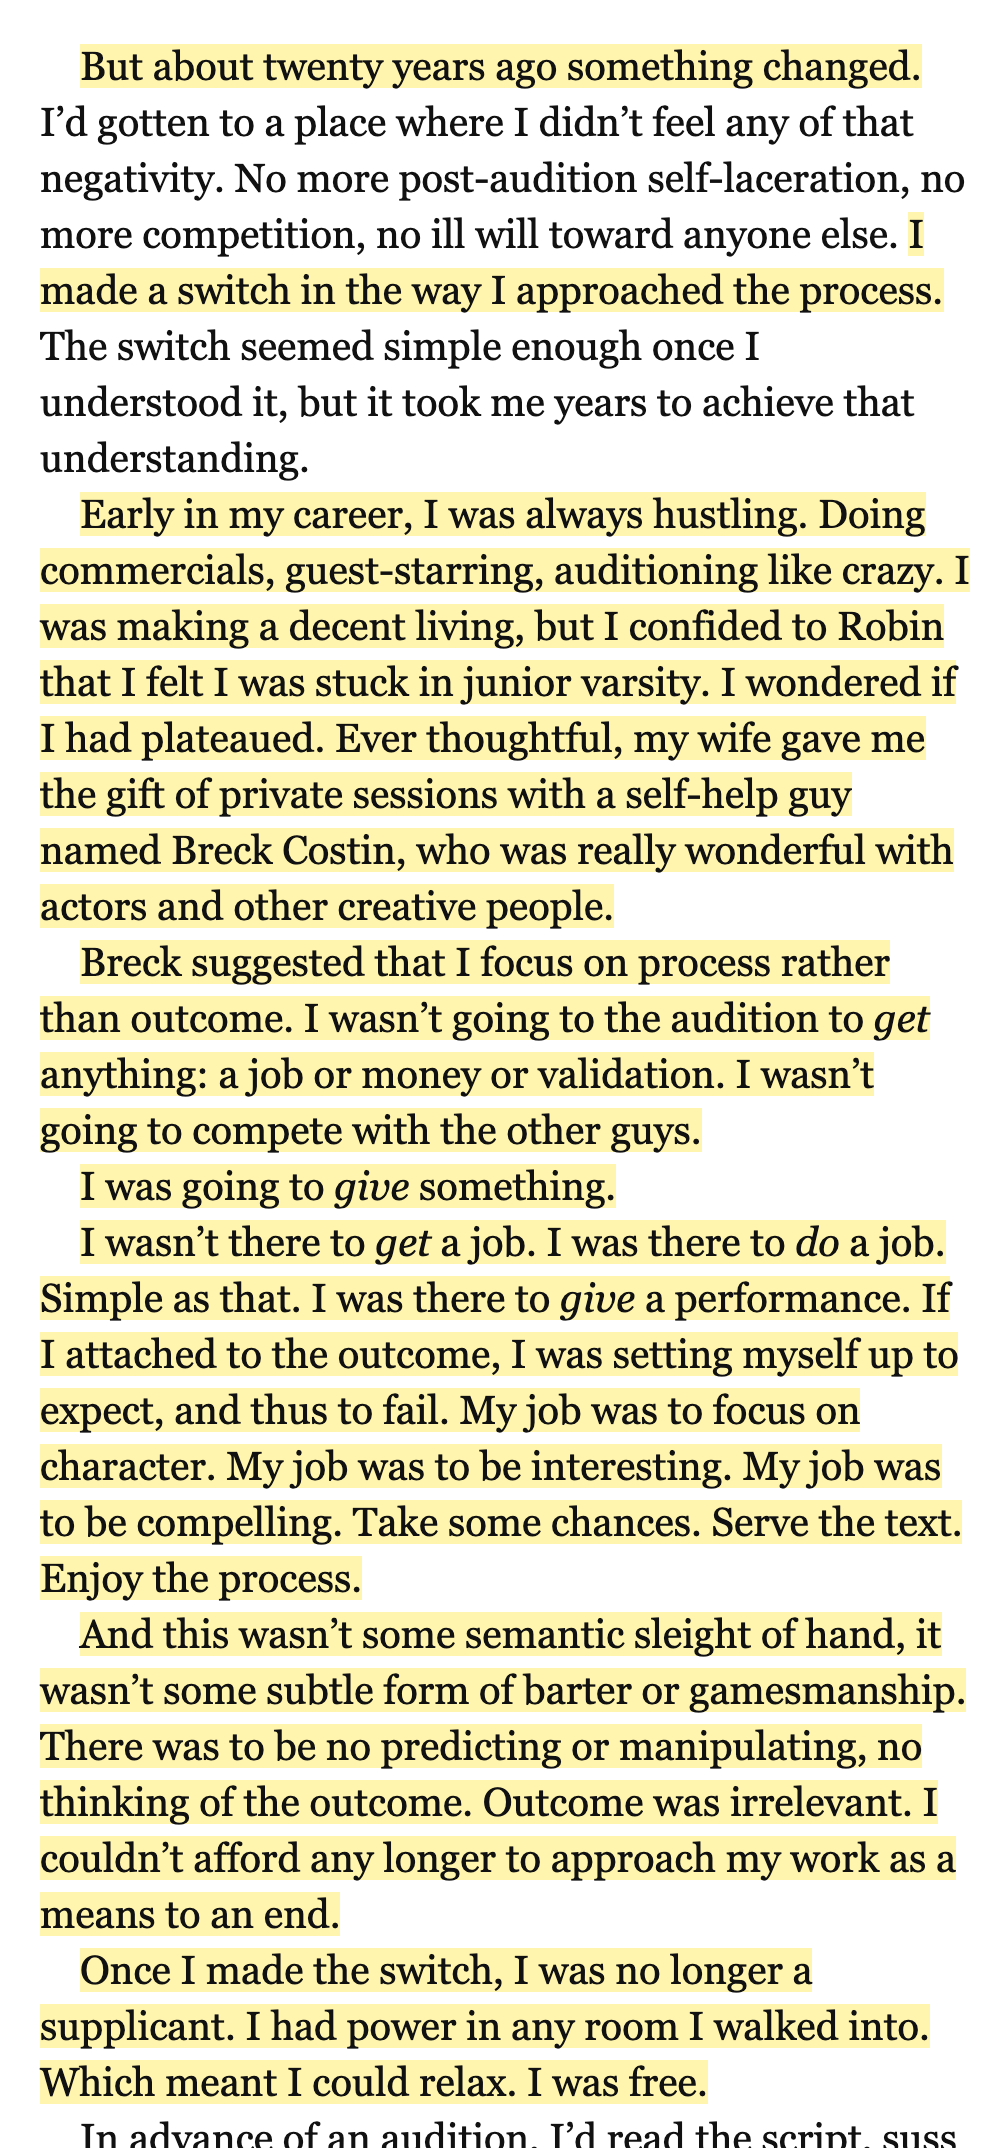 Excerpt from A Life in Parts (by Bryan Cranston) | Process vs. Outcome